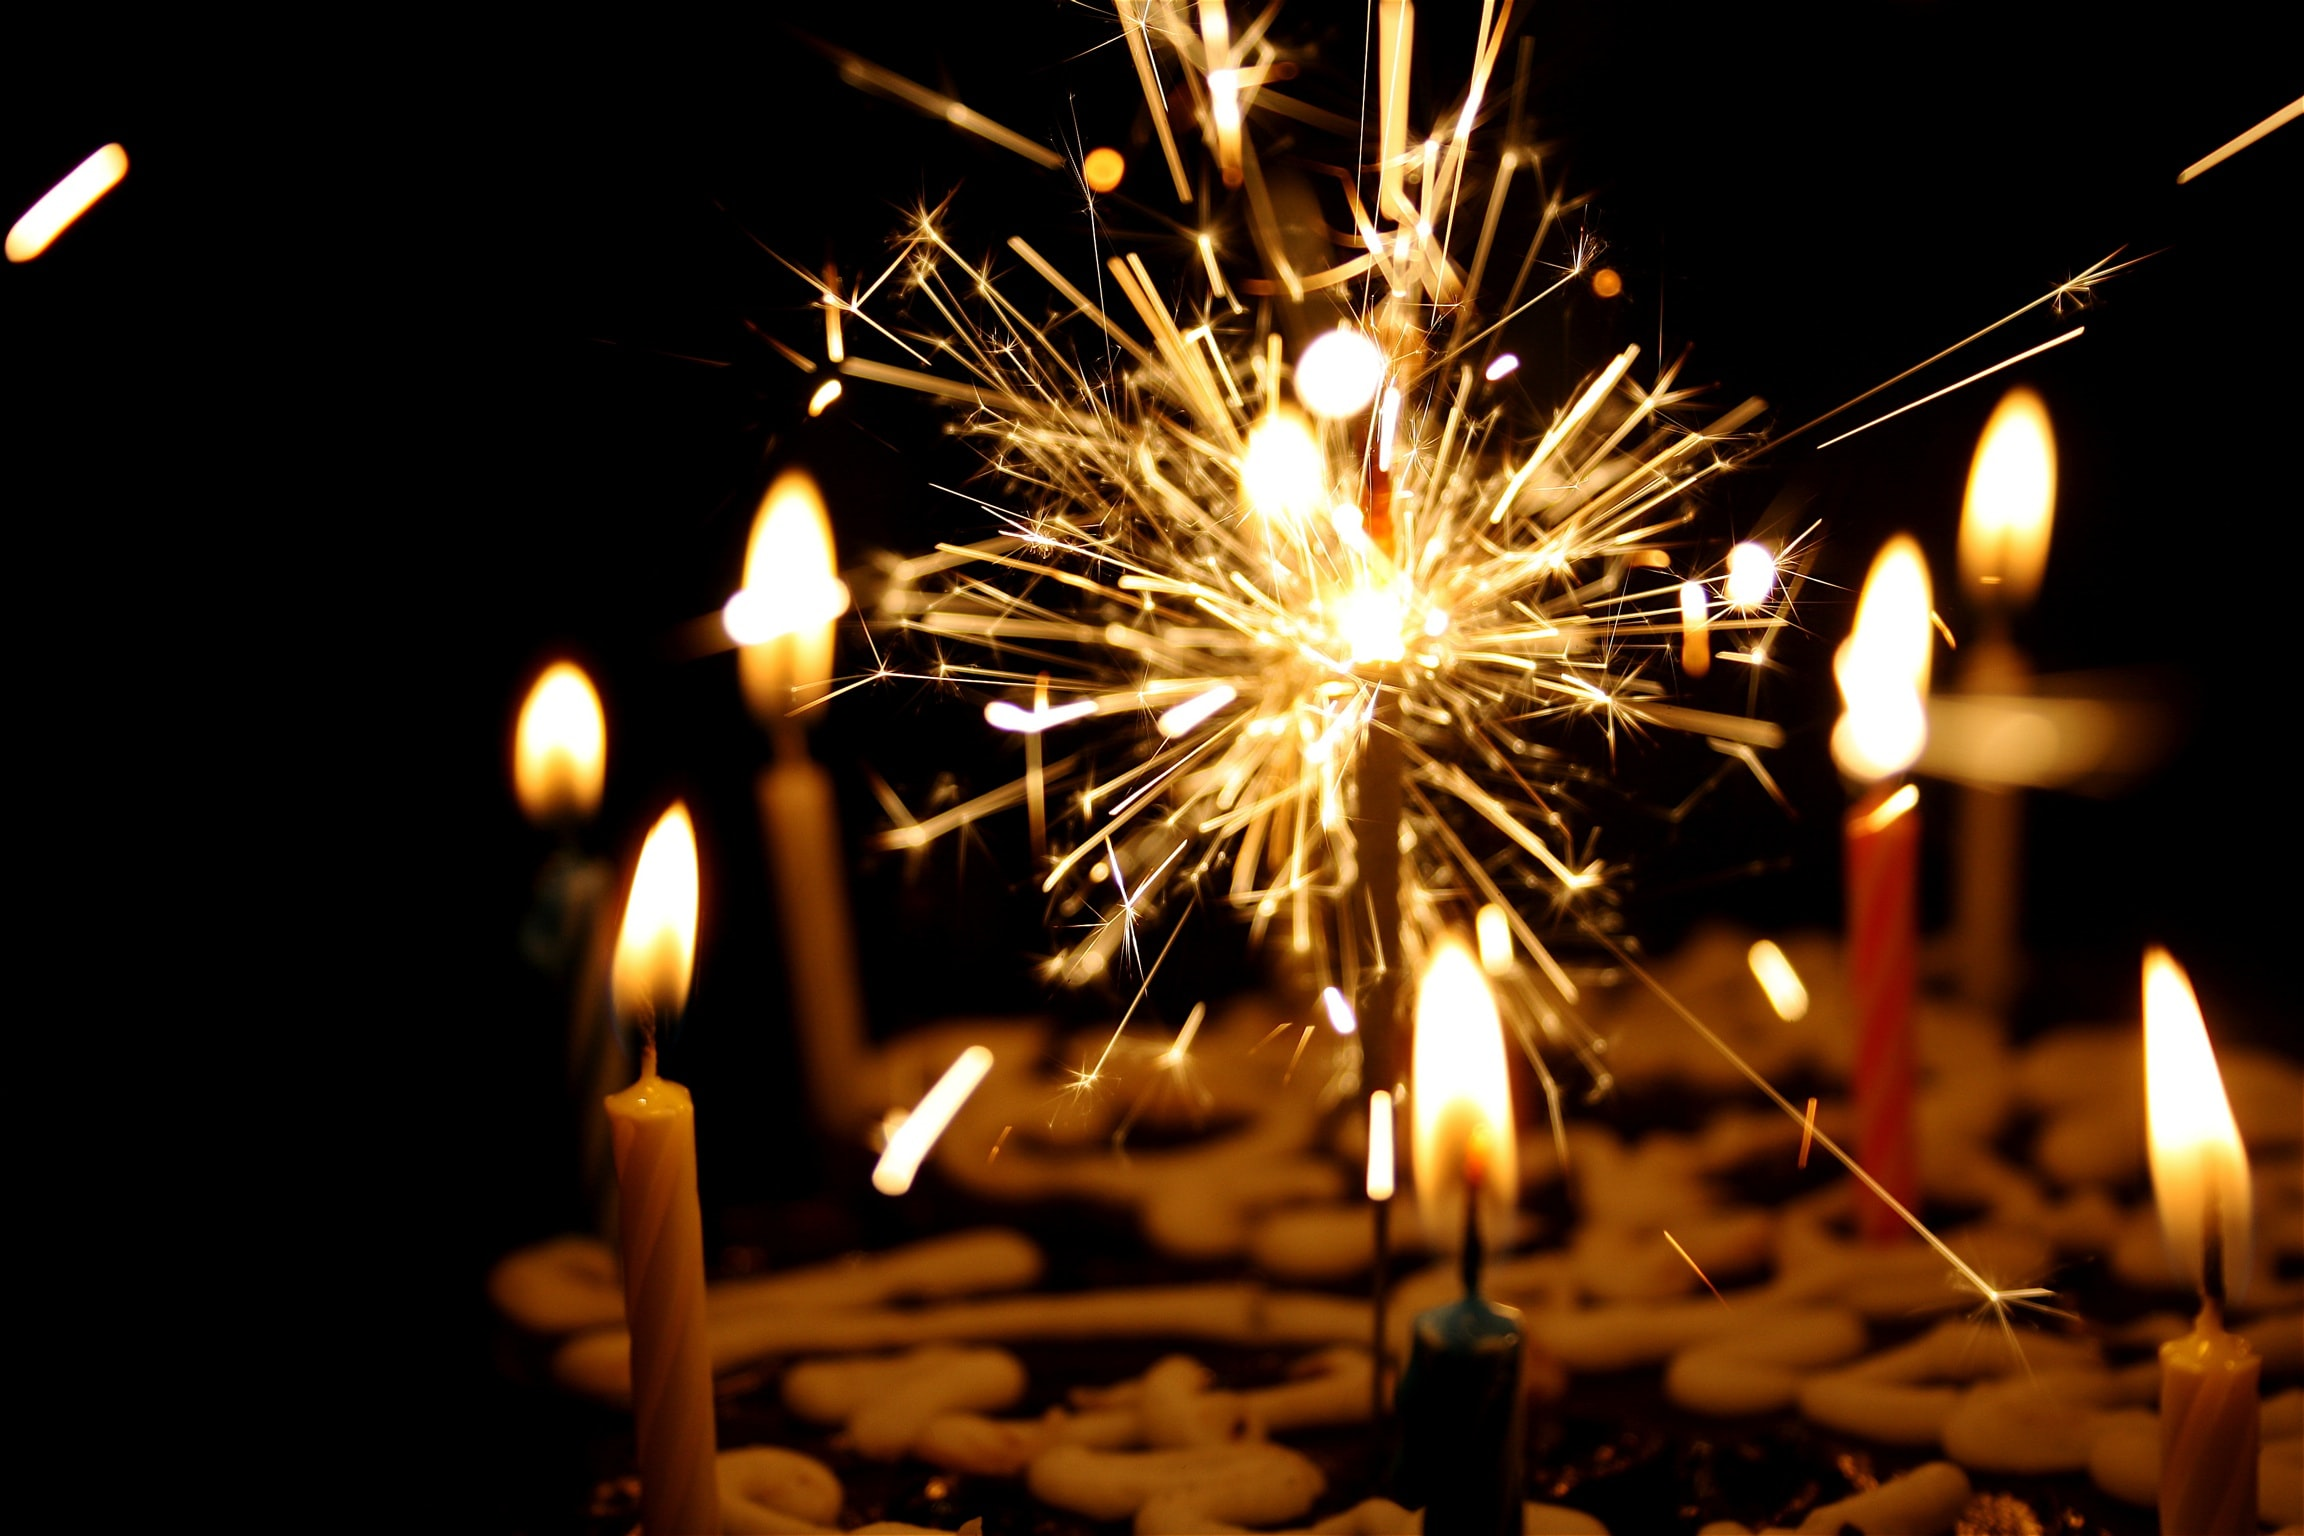 A birthday cake with candles and sparklers